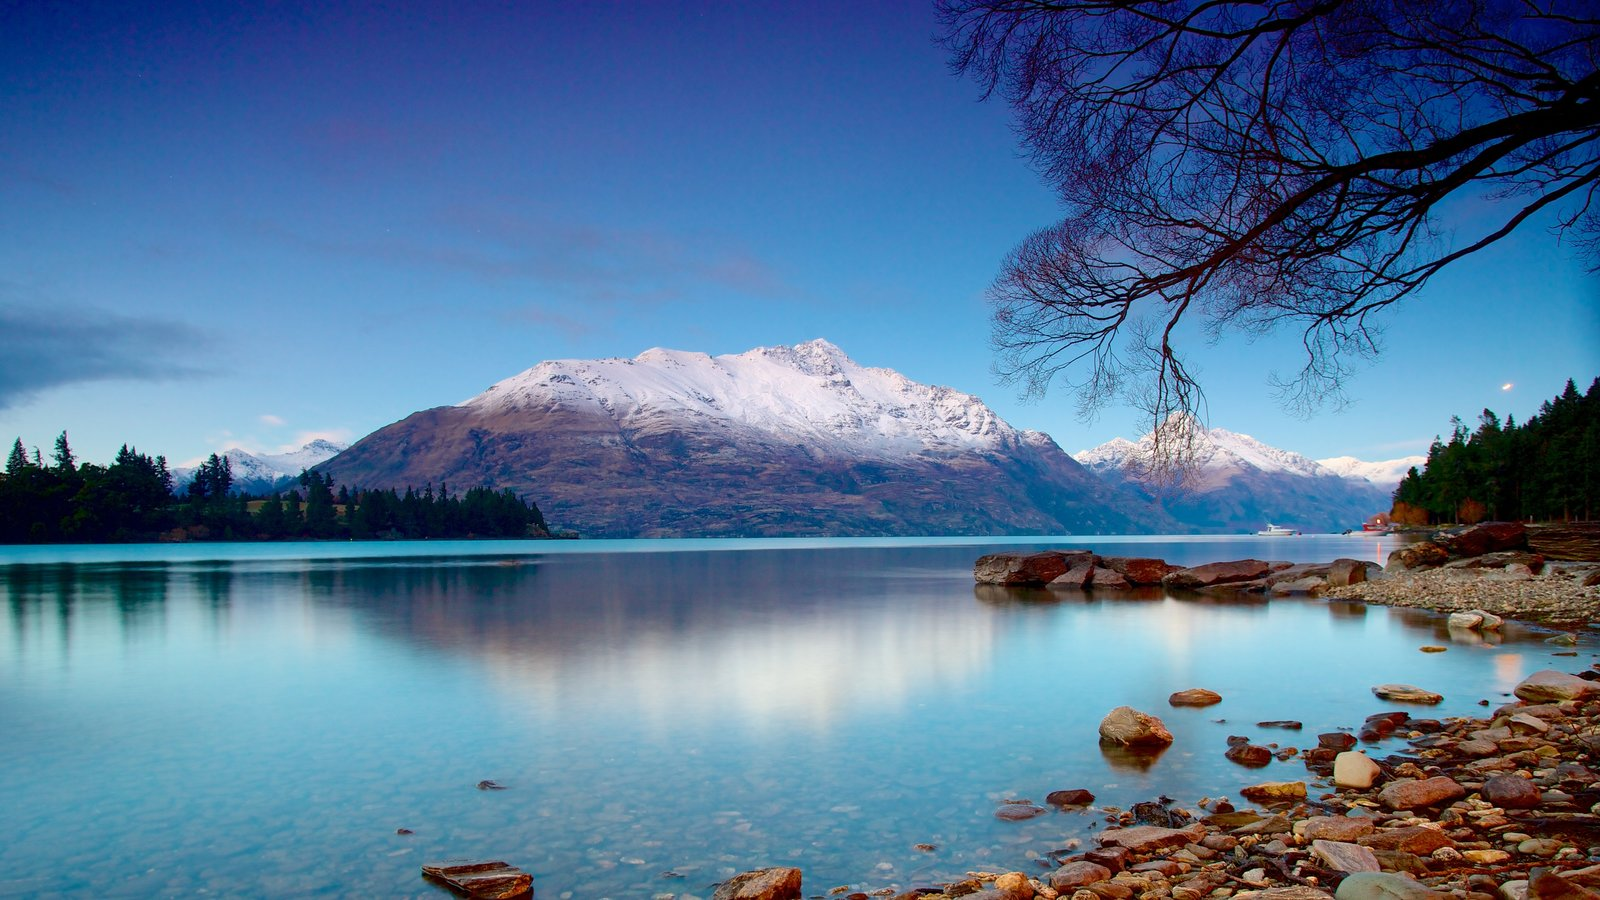 Queenstown featuring landscape views, a pebble beach and mountains